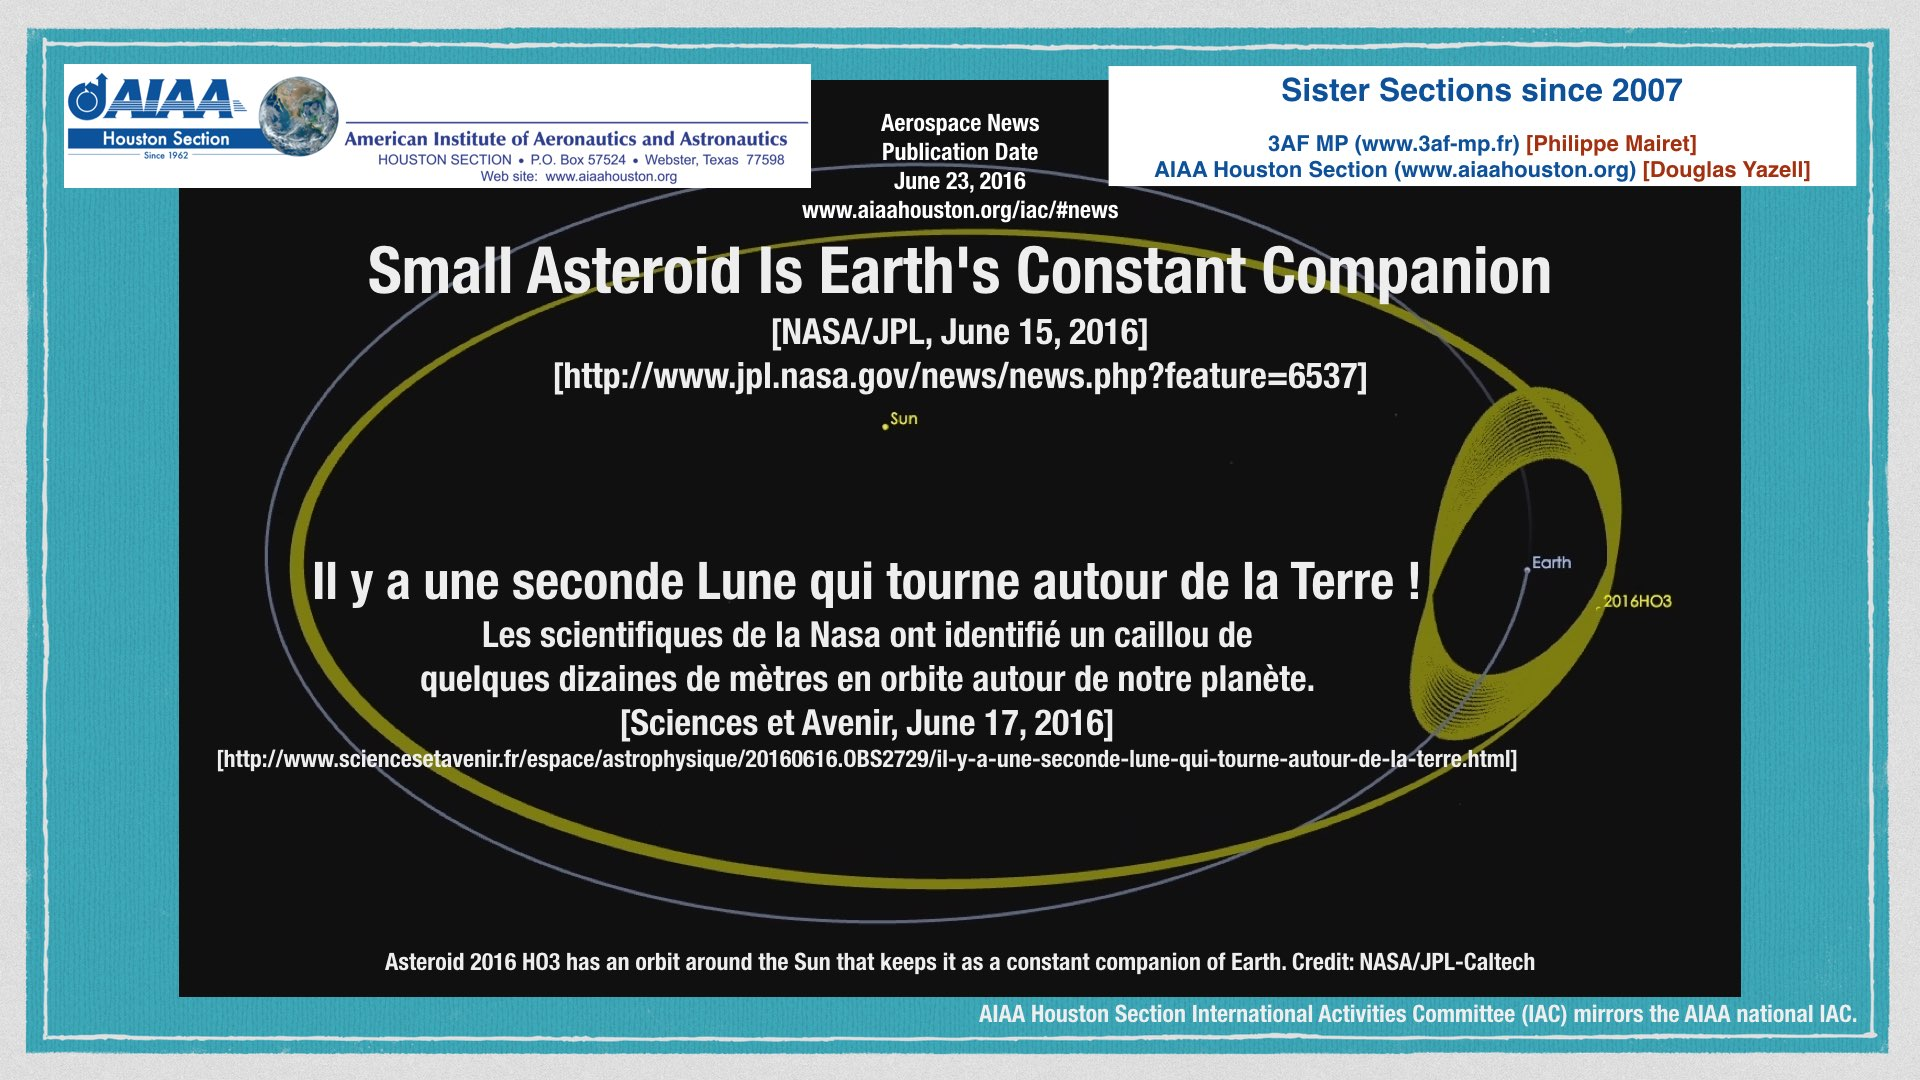 Above: Small Asteroid is Earth's Constant Companion. Image credit: NASA/JPL. (Click to zoom.)